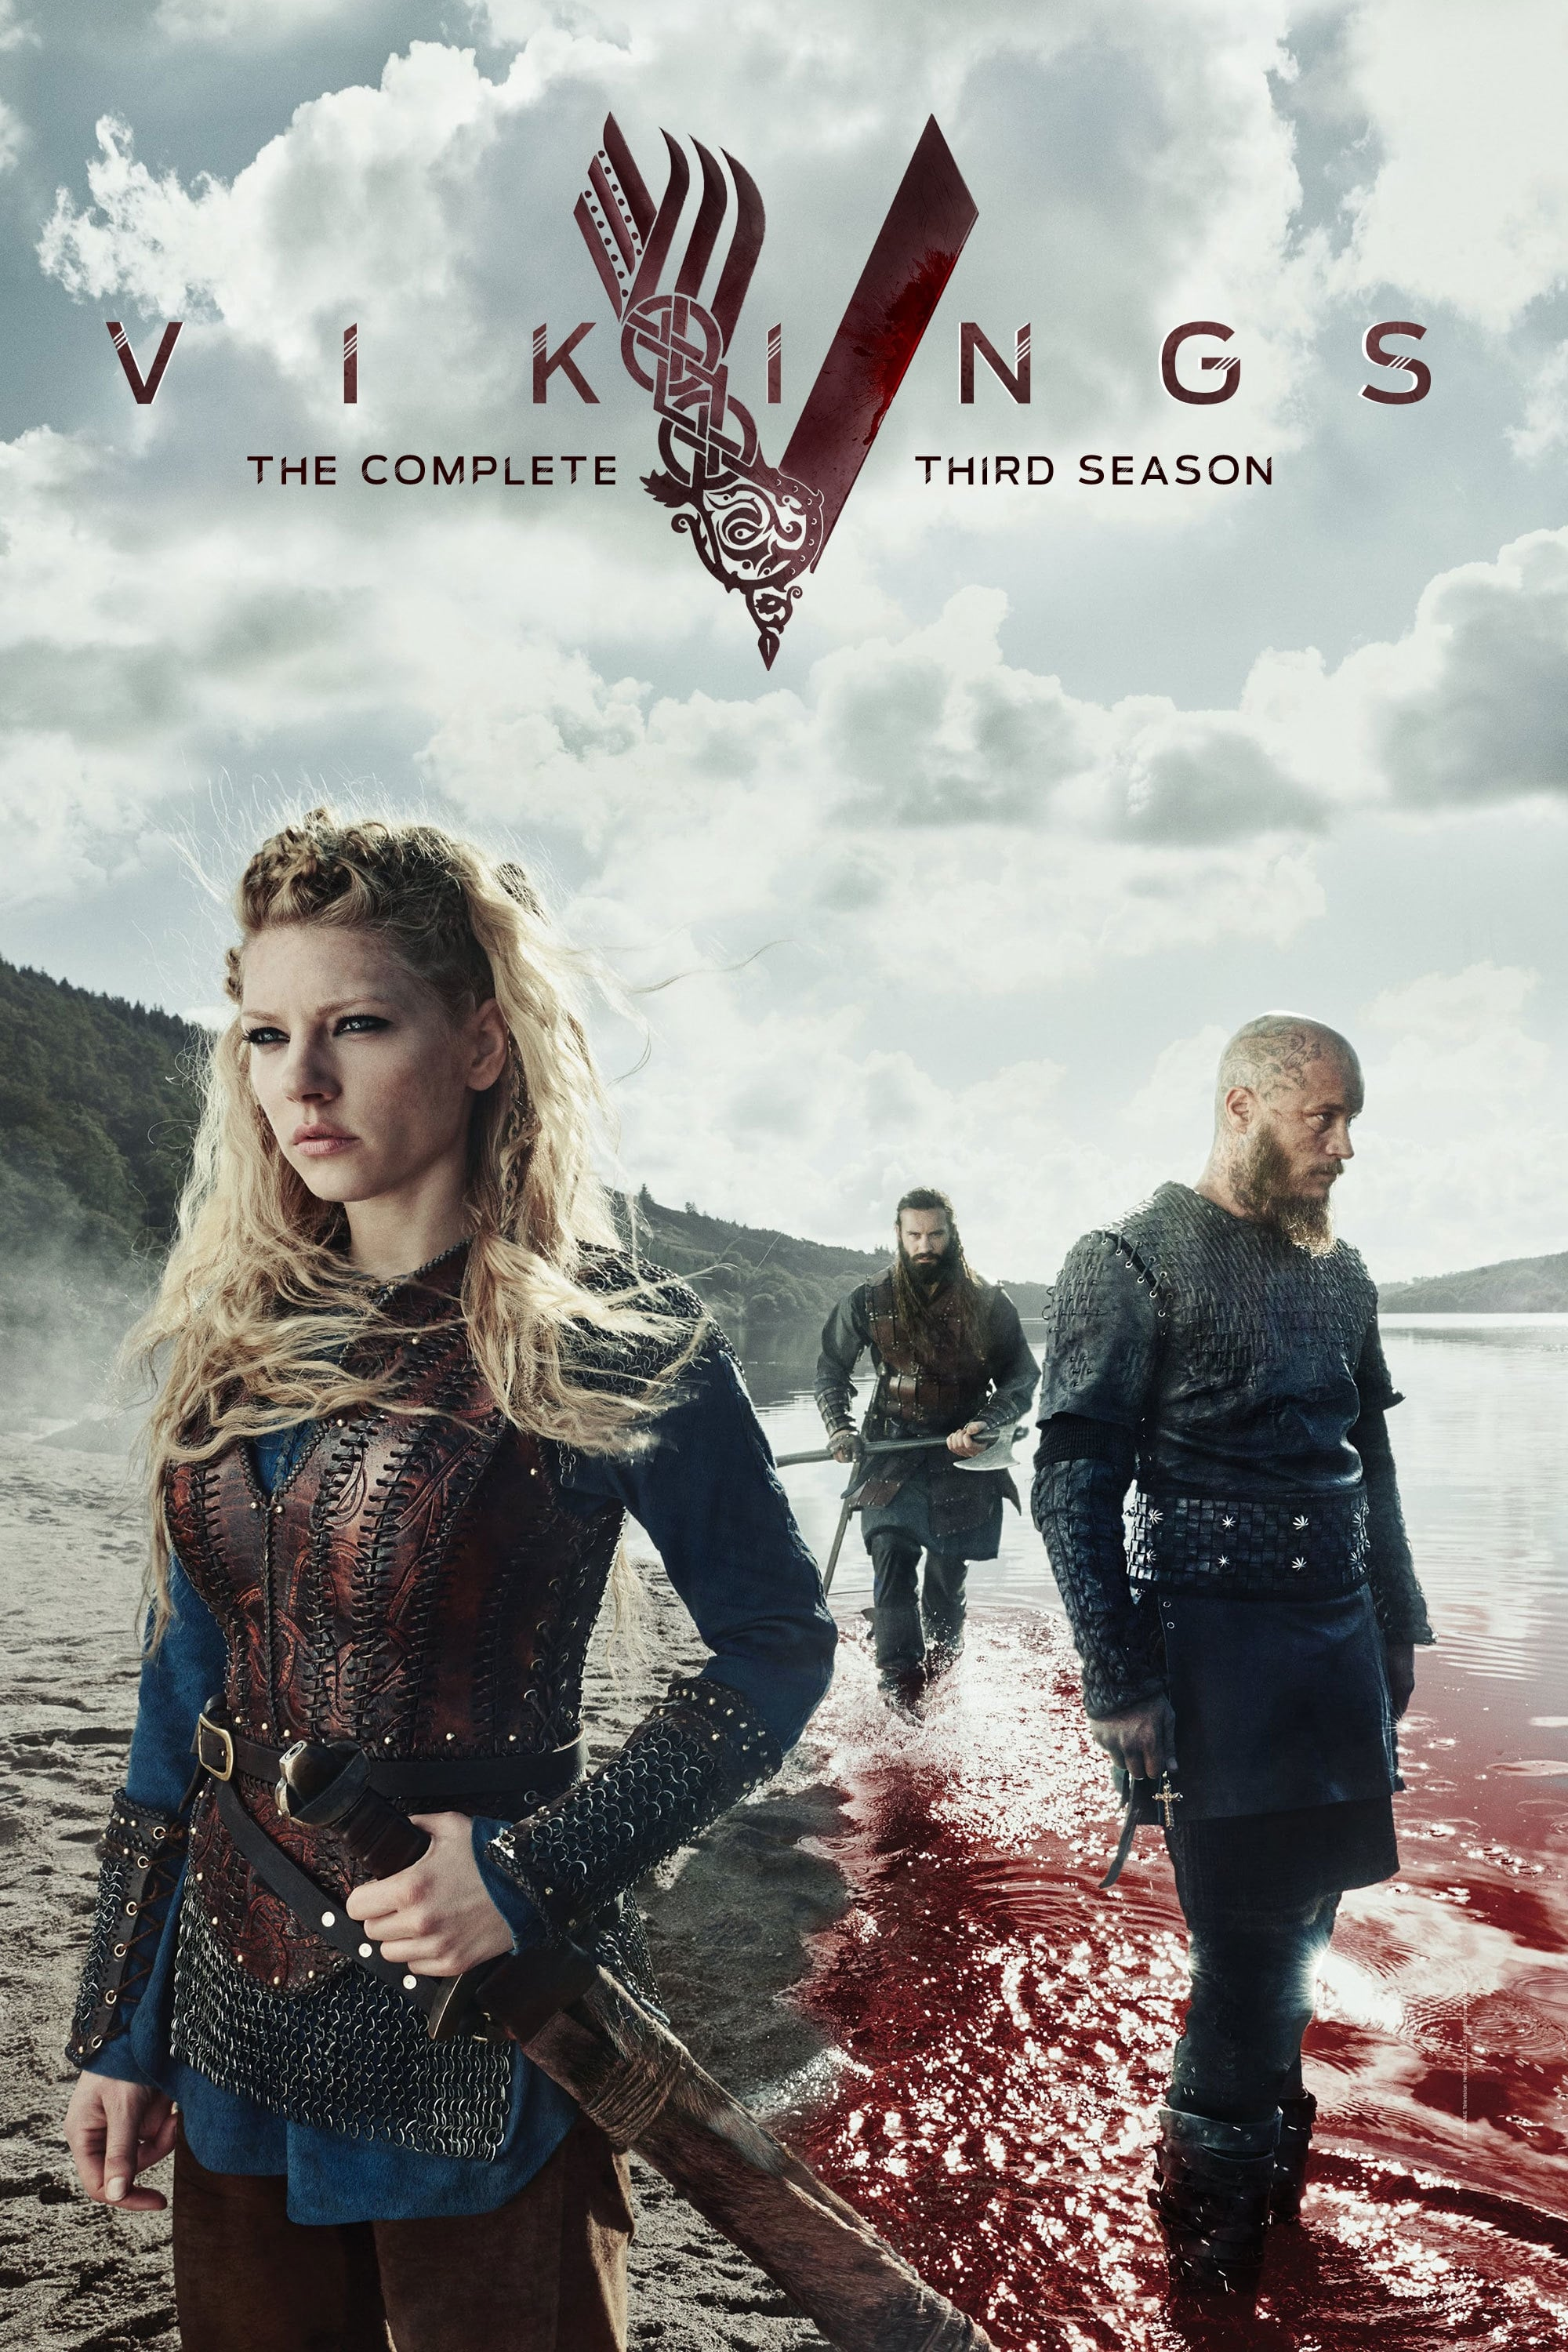 http://abroadlanguages.com/vikings-3a-temporada-2015-bluray-720p-legendado-torrent-download/